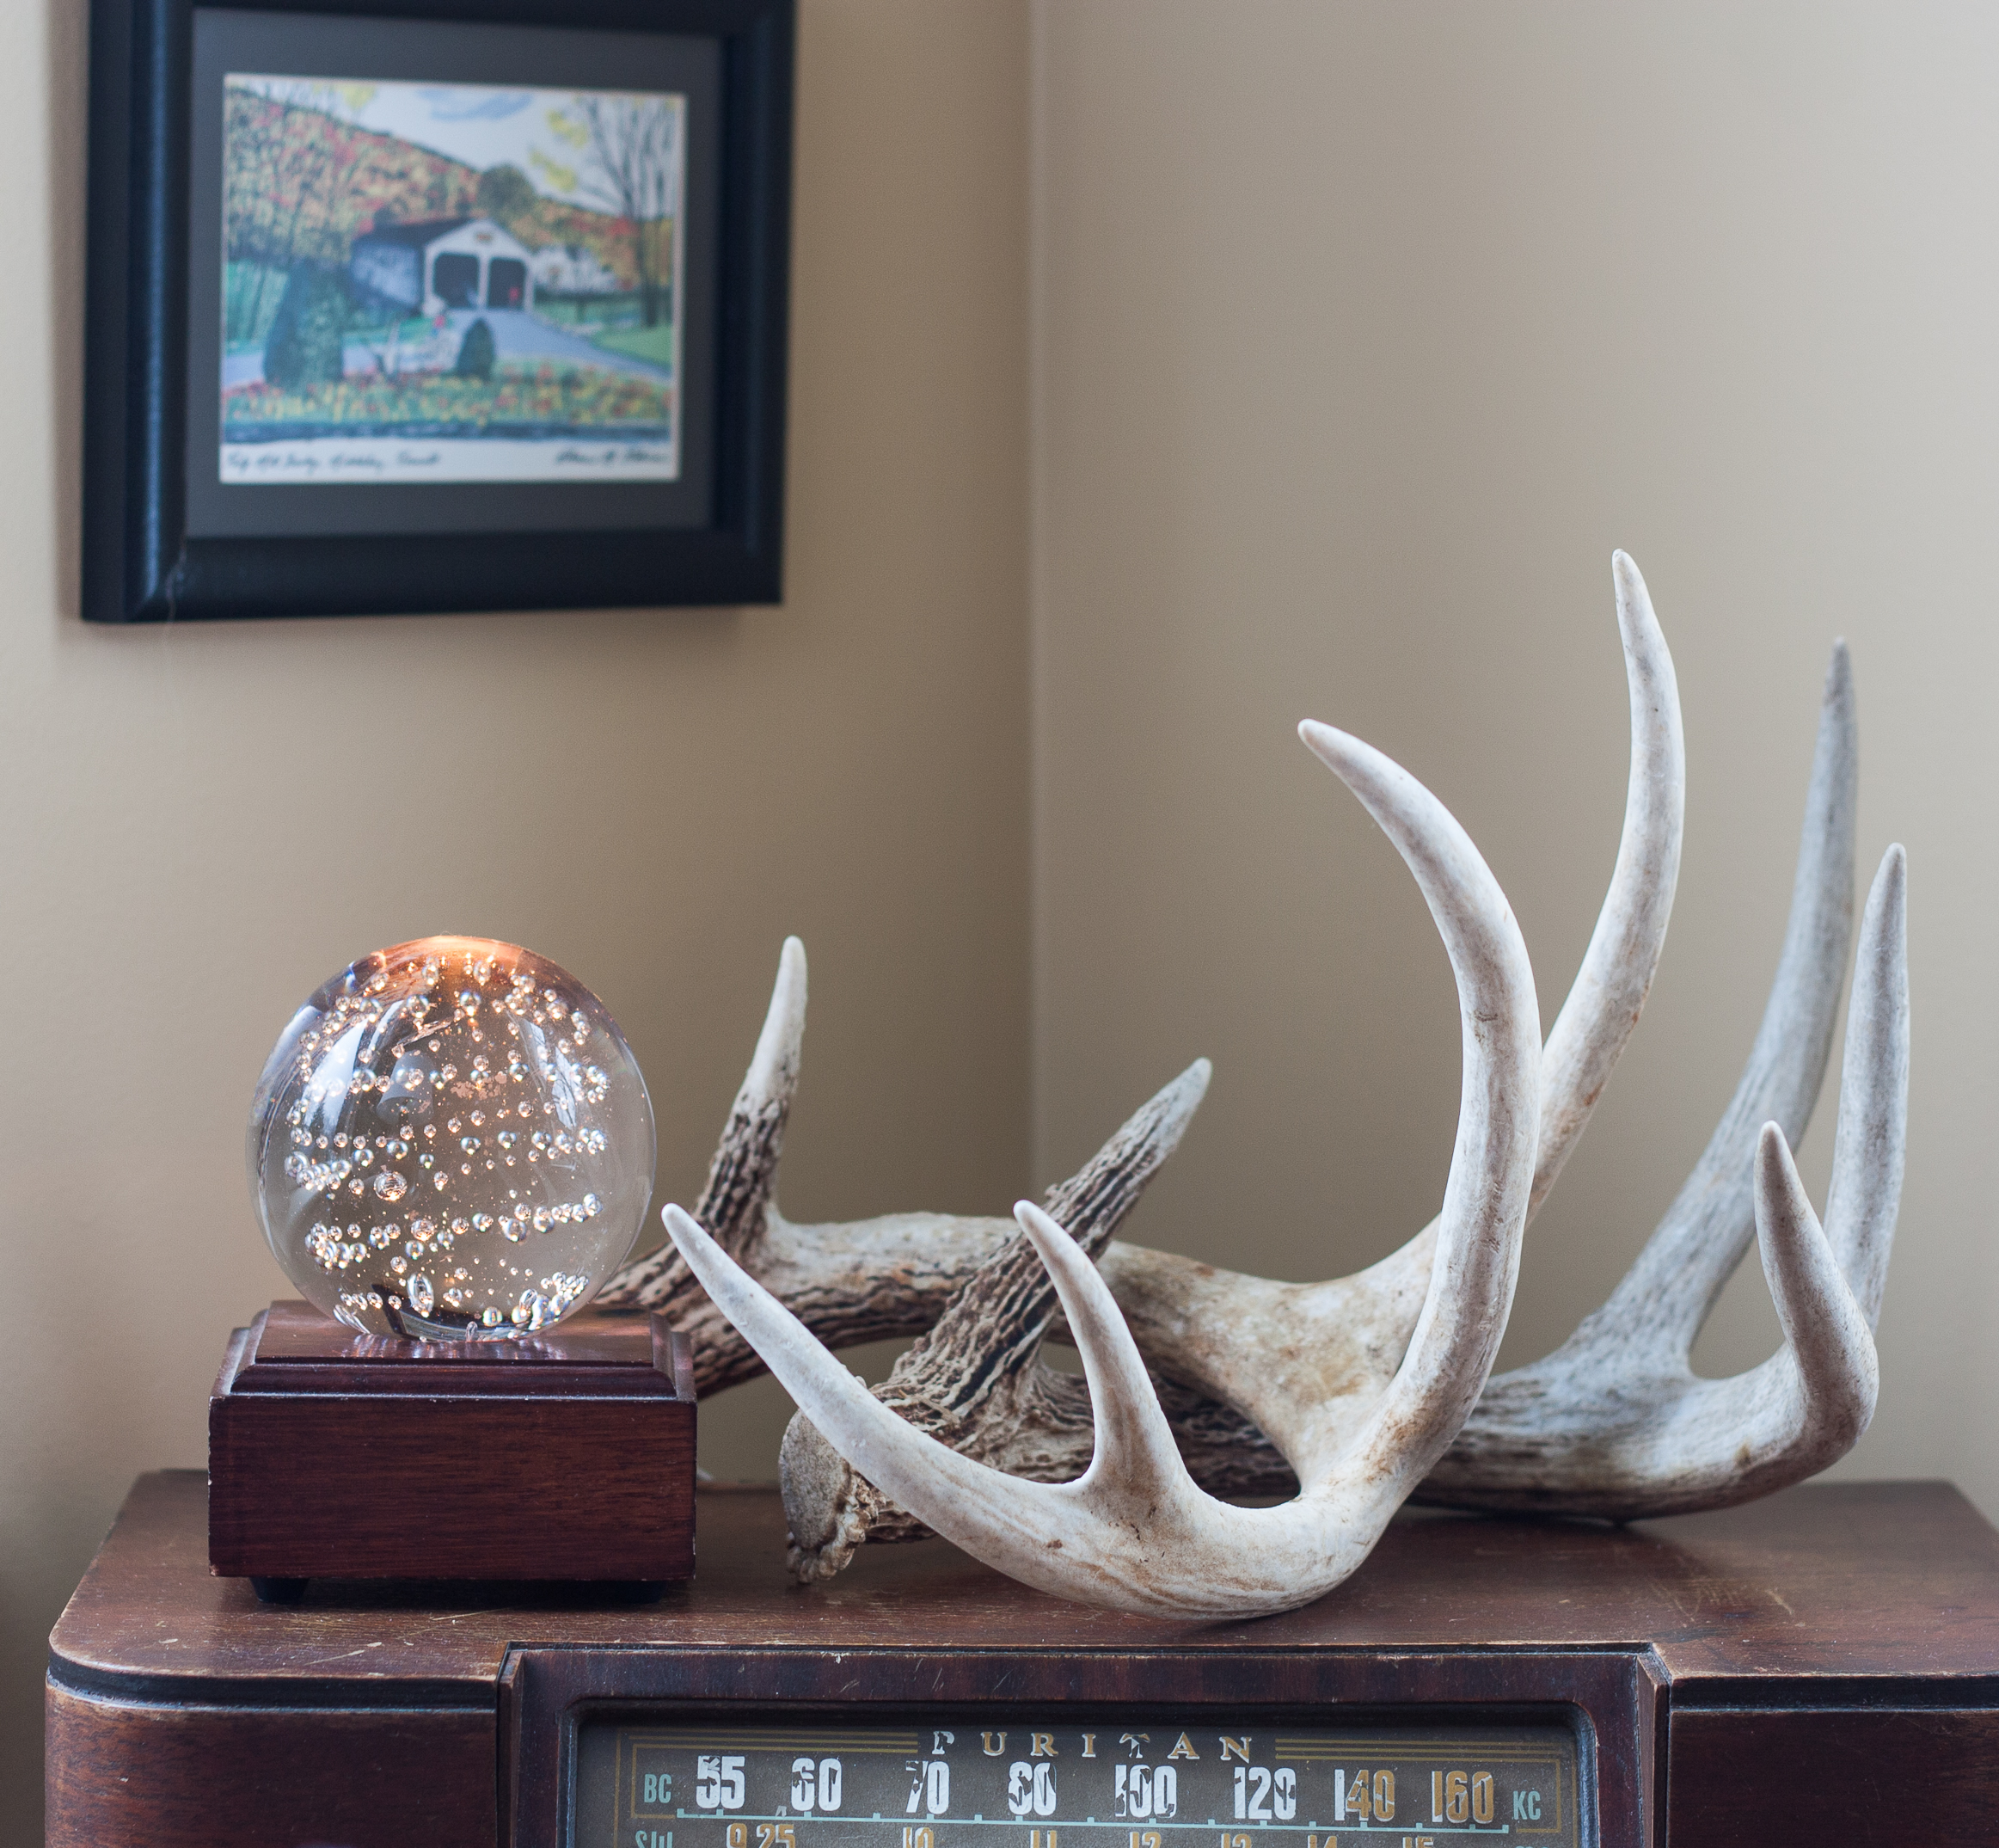 Cozy Winter Decor - Antlers and a lighted glass globe. #cozy #winterdecor #deerantlers